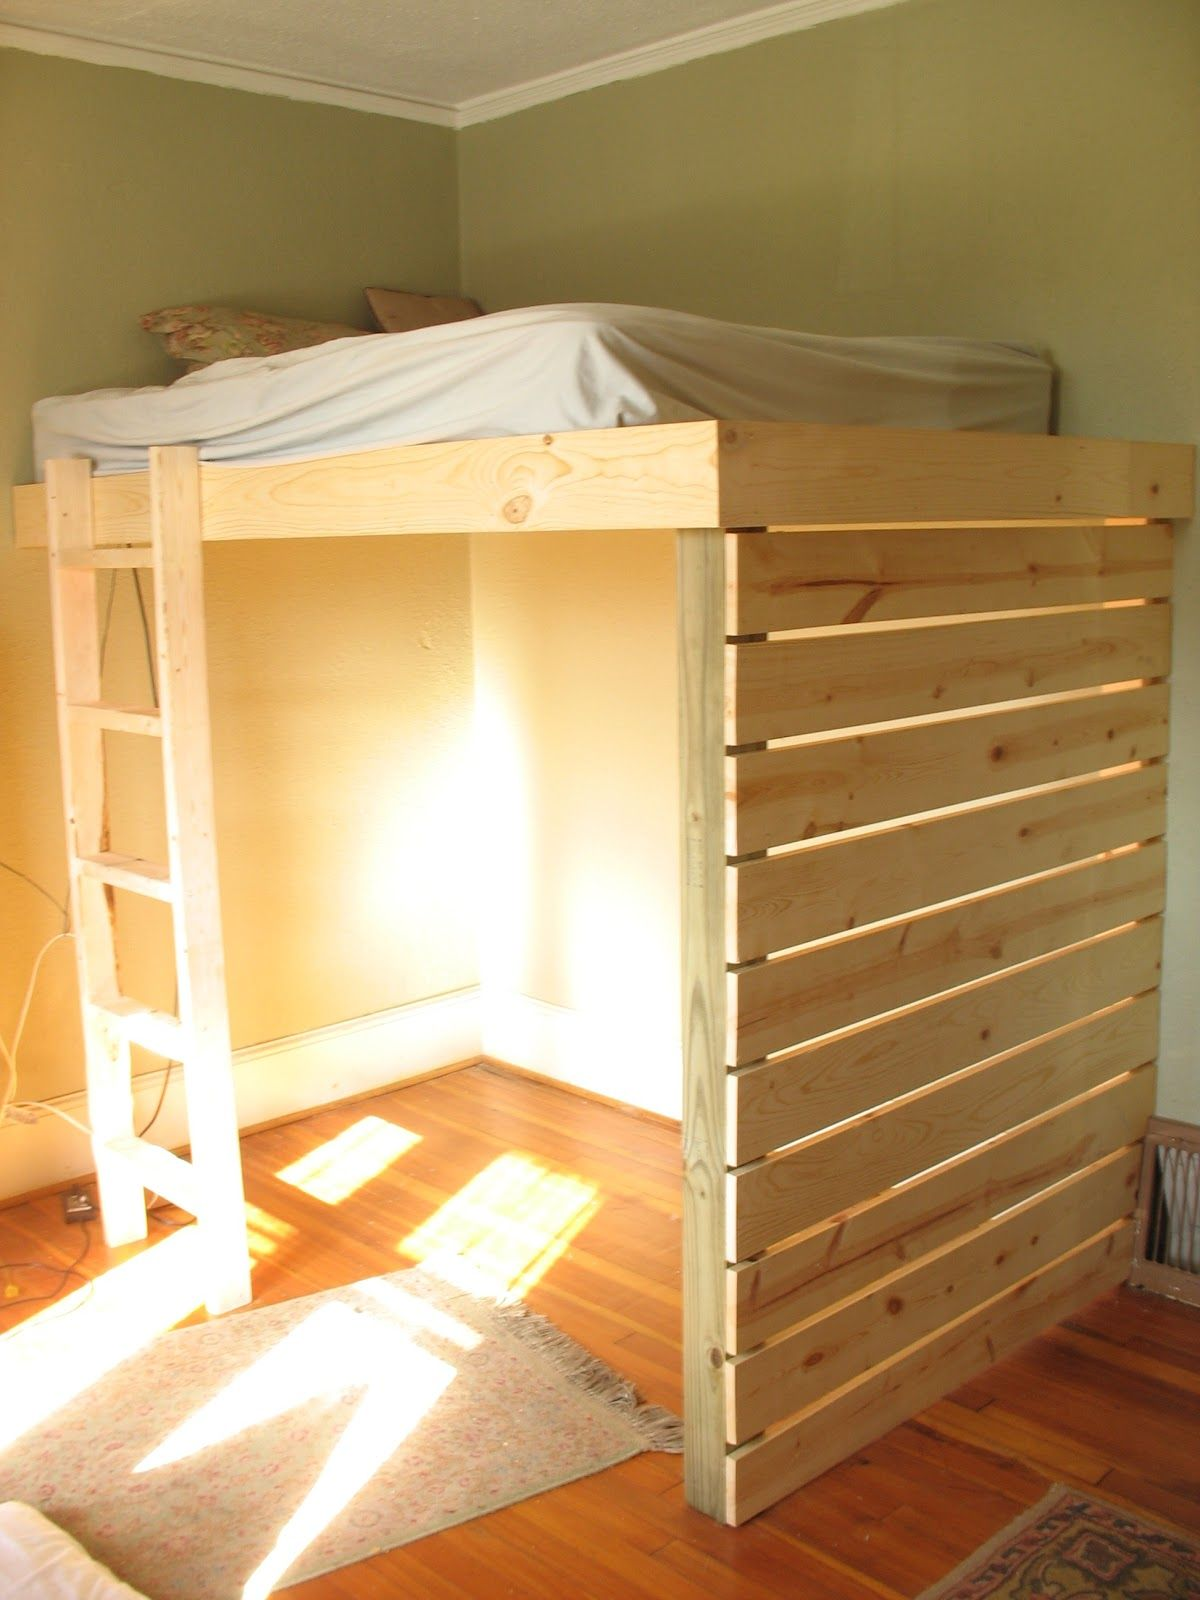 MicMac Interiors Diy loft bed